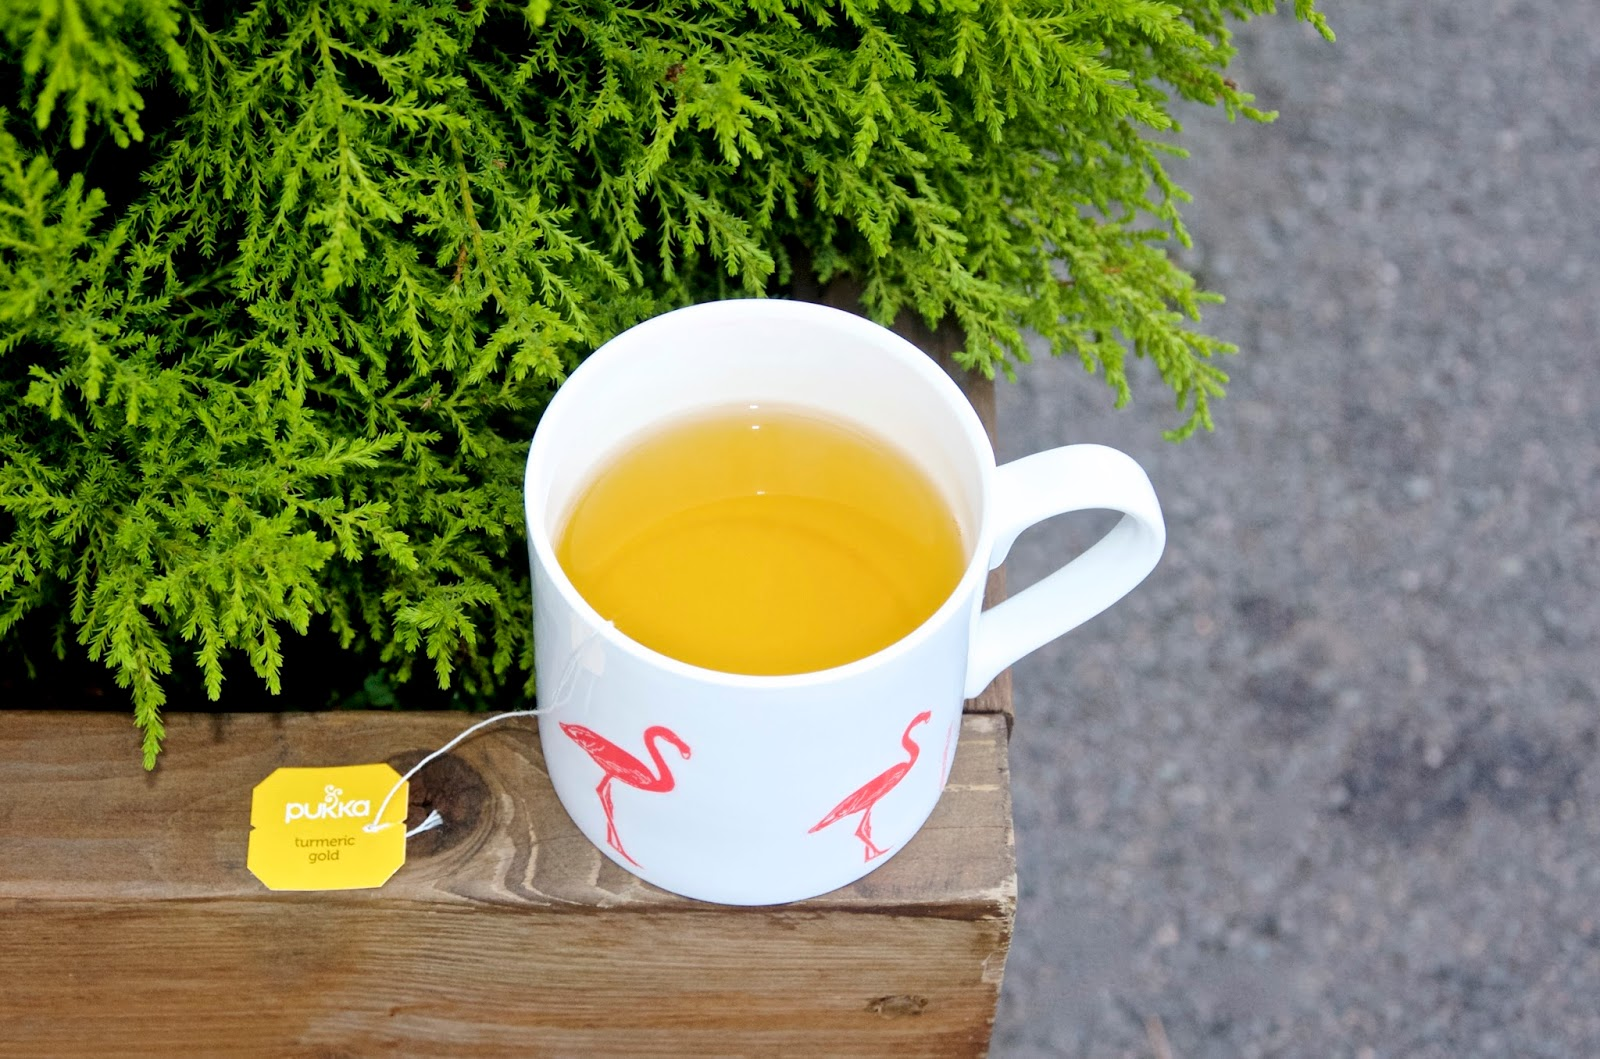 flamingo mug of turmeric tea and fern